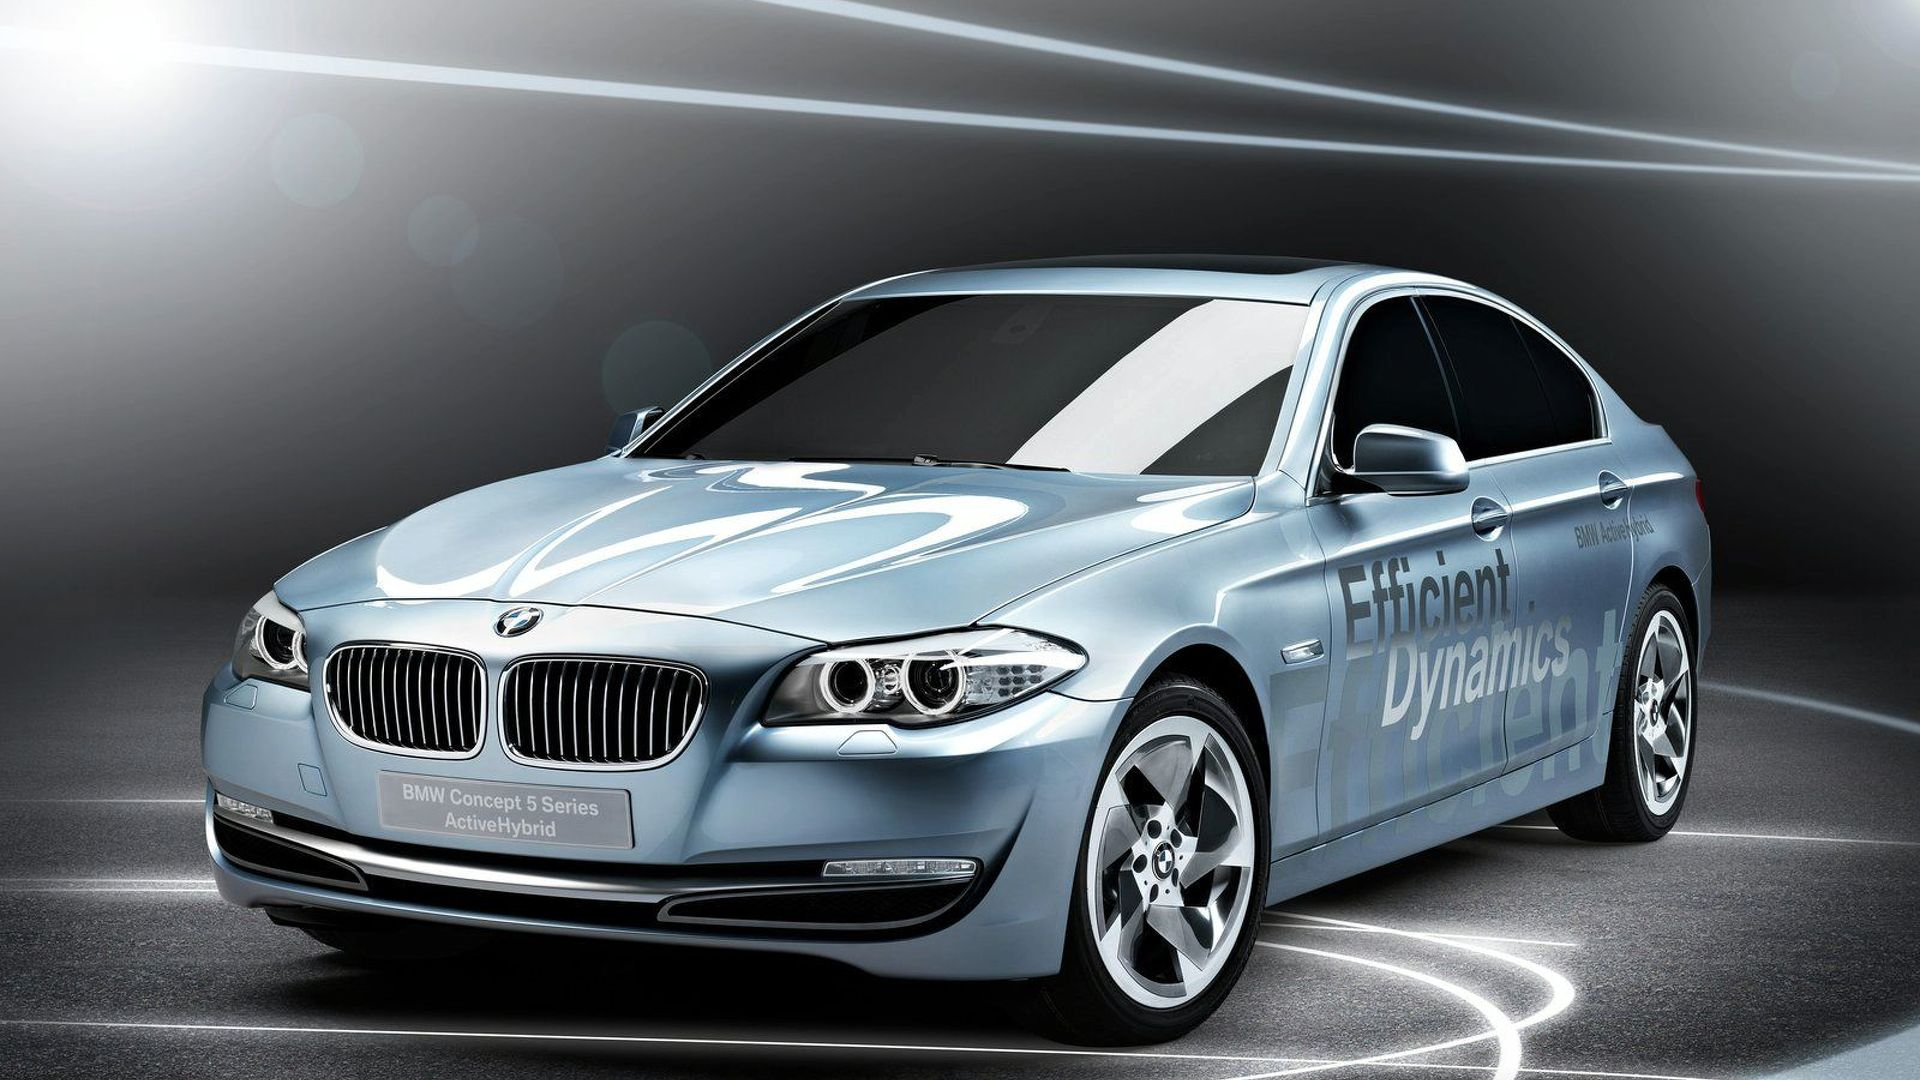 Https www motor1 com news 21807 bmw 5 series hybrid confirmed for 2011 3 series hybrid in development bmw green bmw 3 series 3 series 2012 bmw